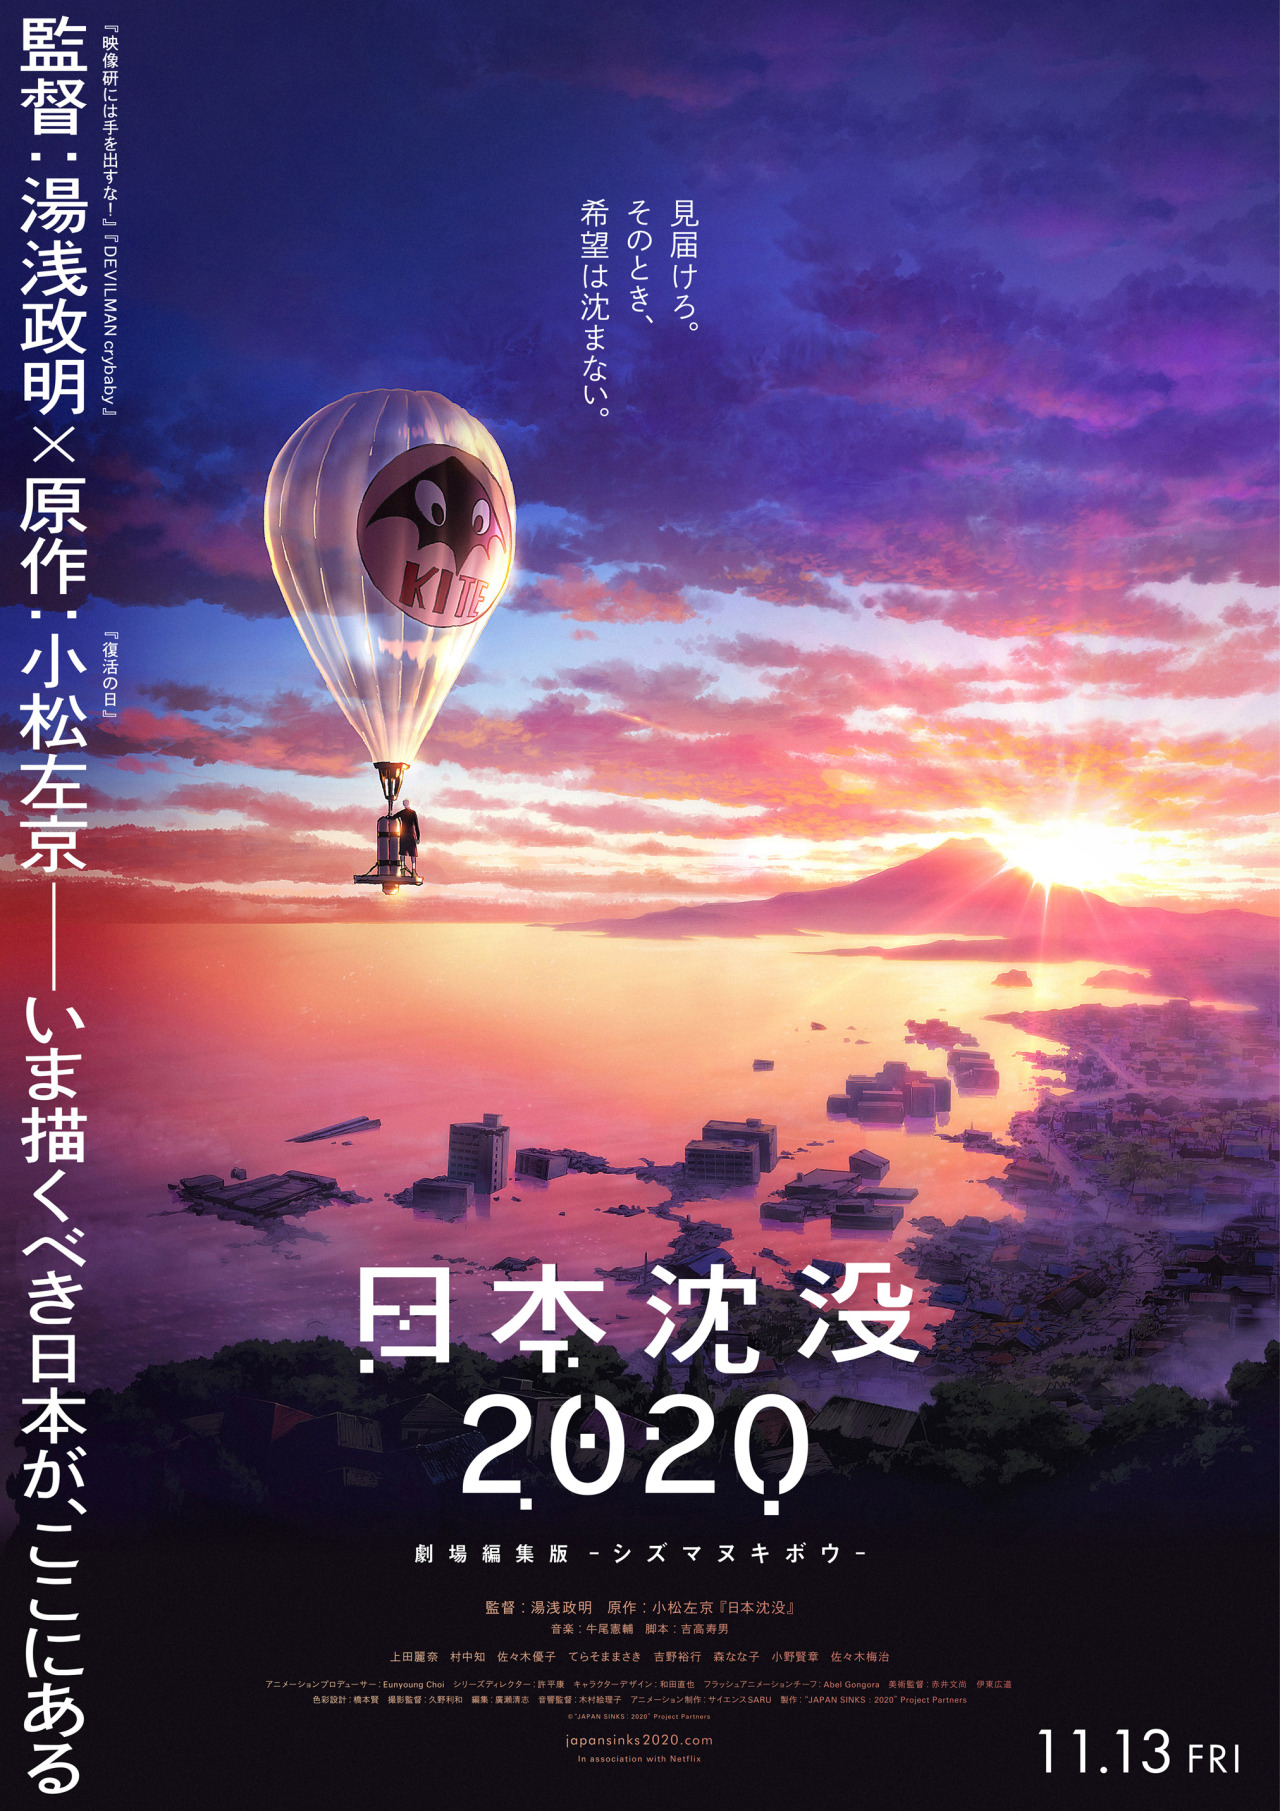 Visual for theatrical release of Japan Sinks 2020